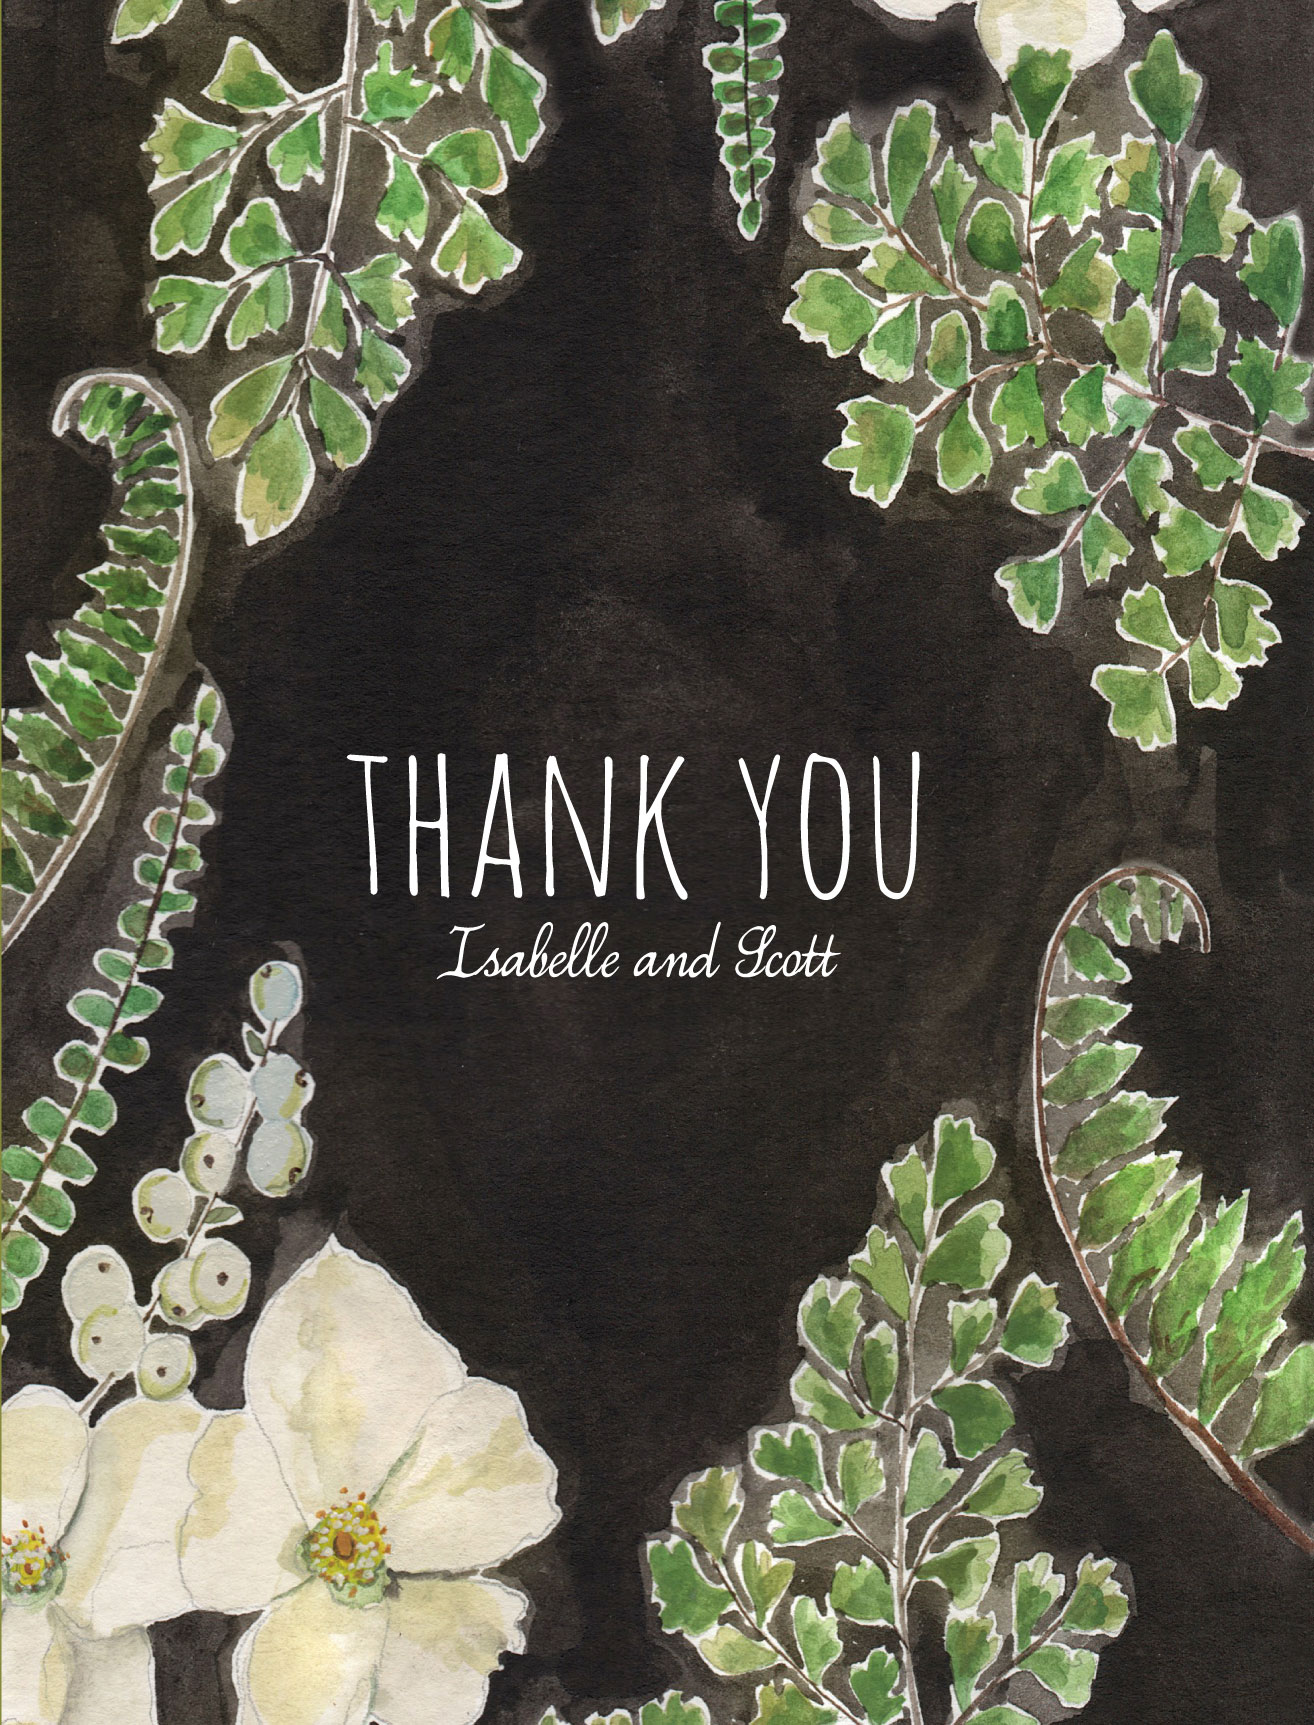 a thank you note for a gift